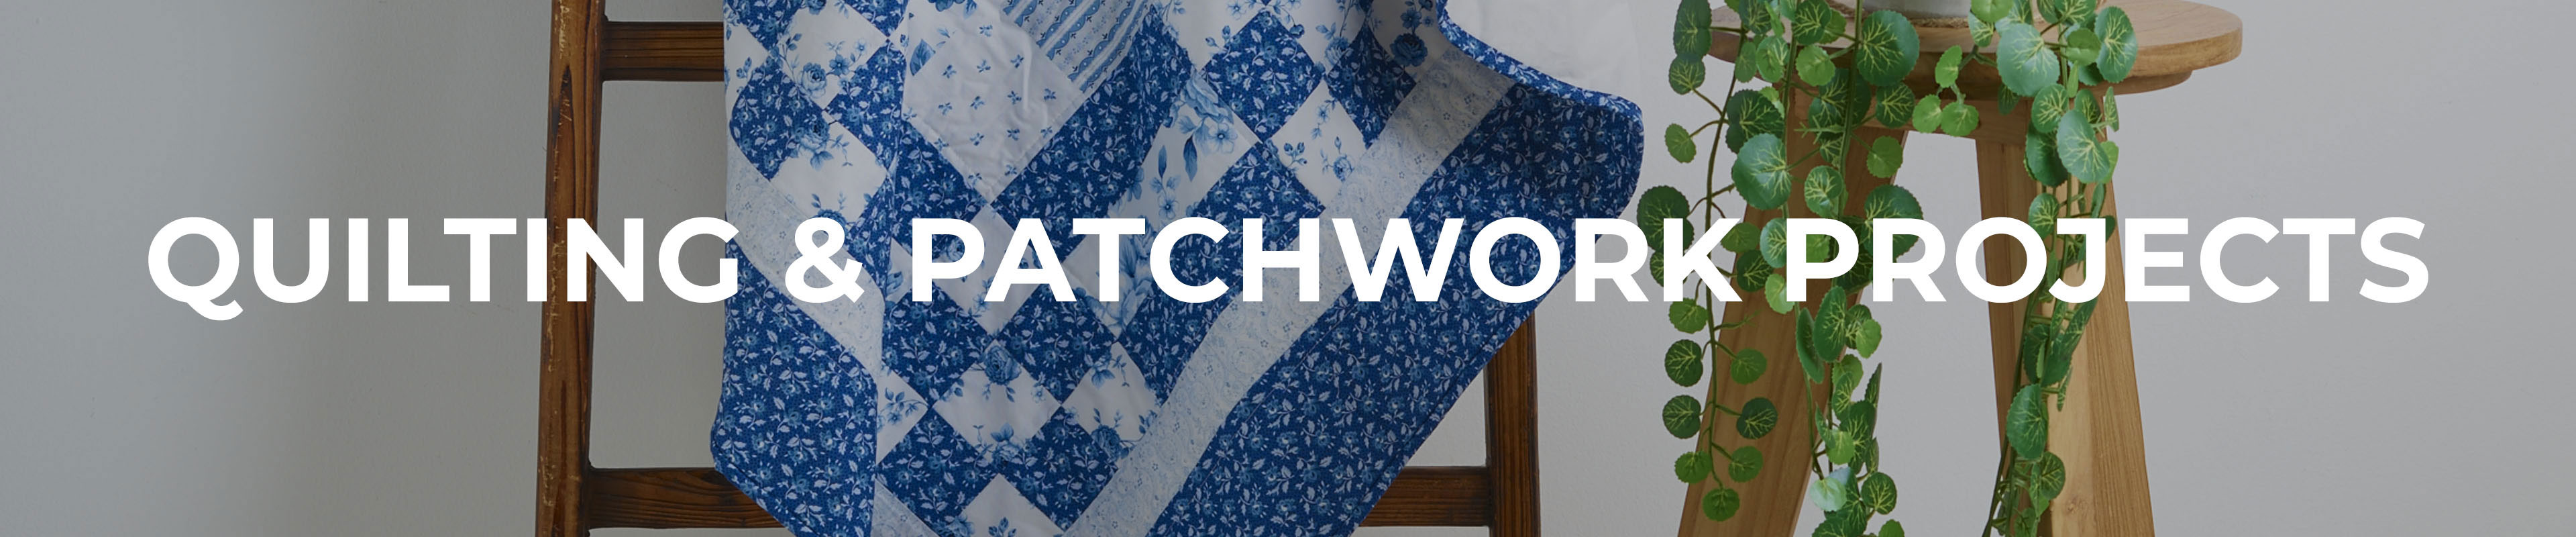 Quilting & Patchwork Projects